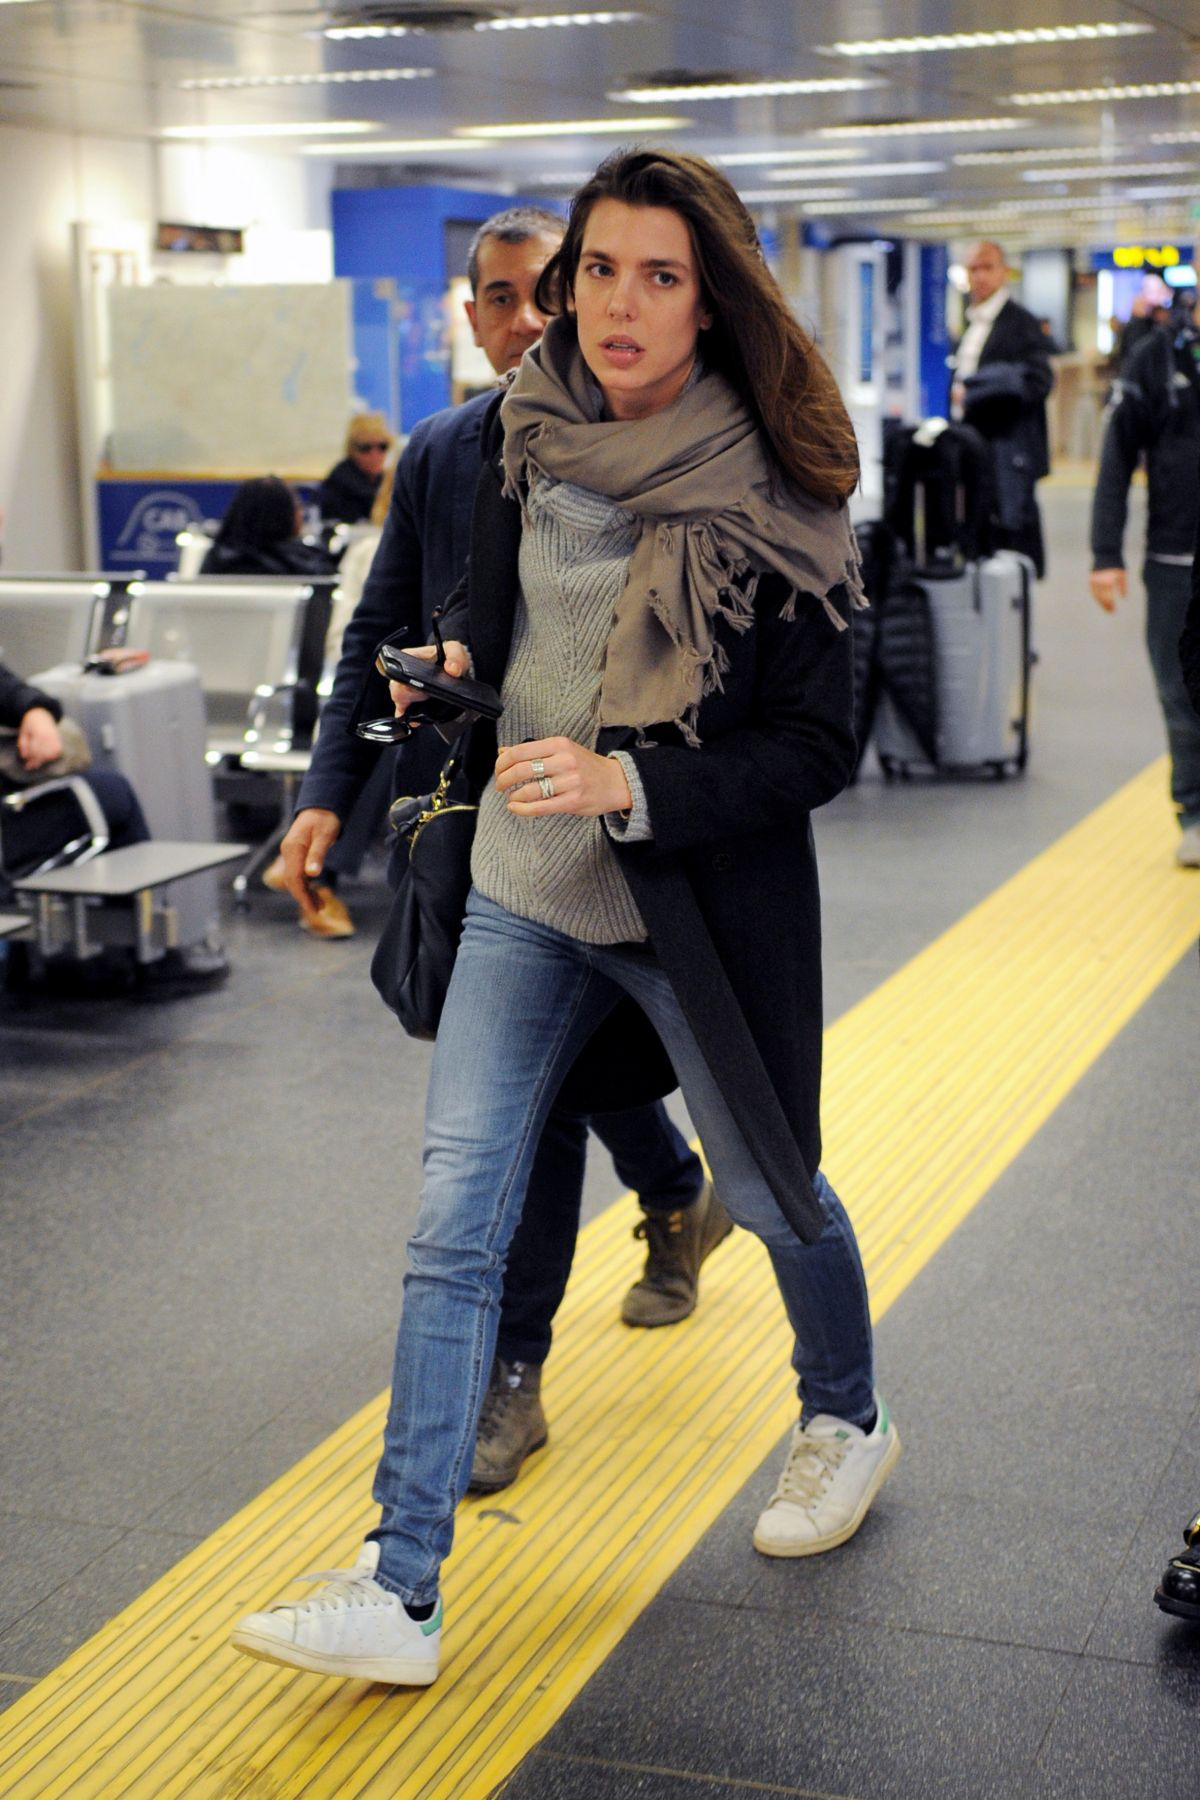 CHARLOTTE CASIRAGHI at Linate Airport in Milan 02/21/2017